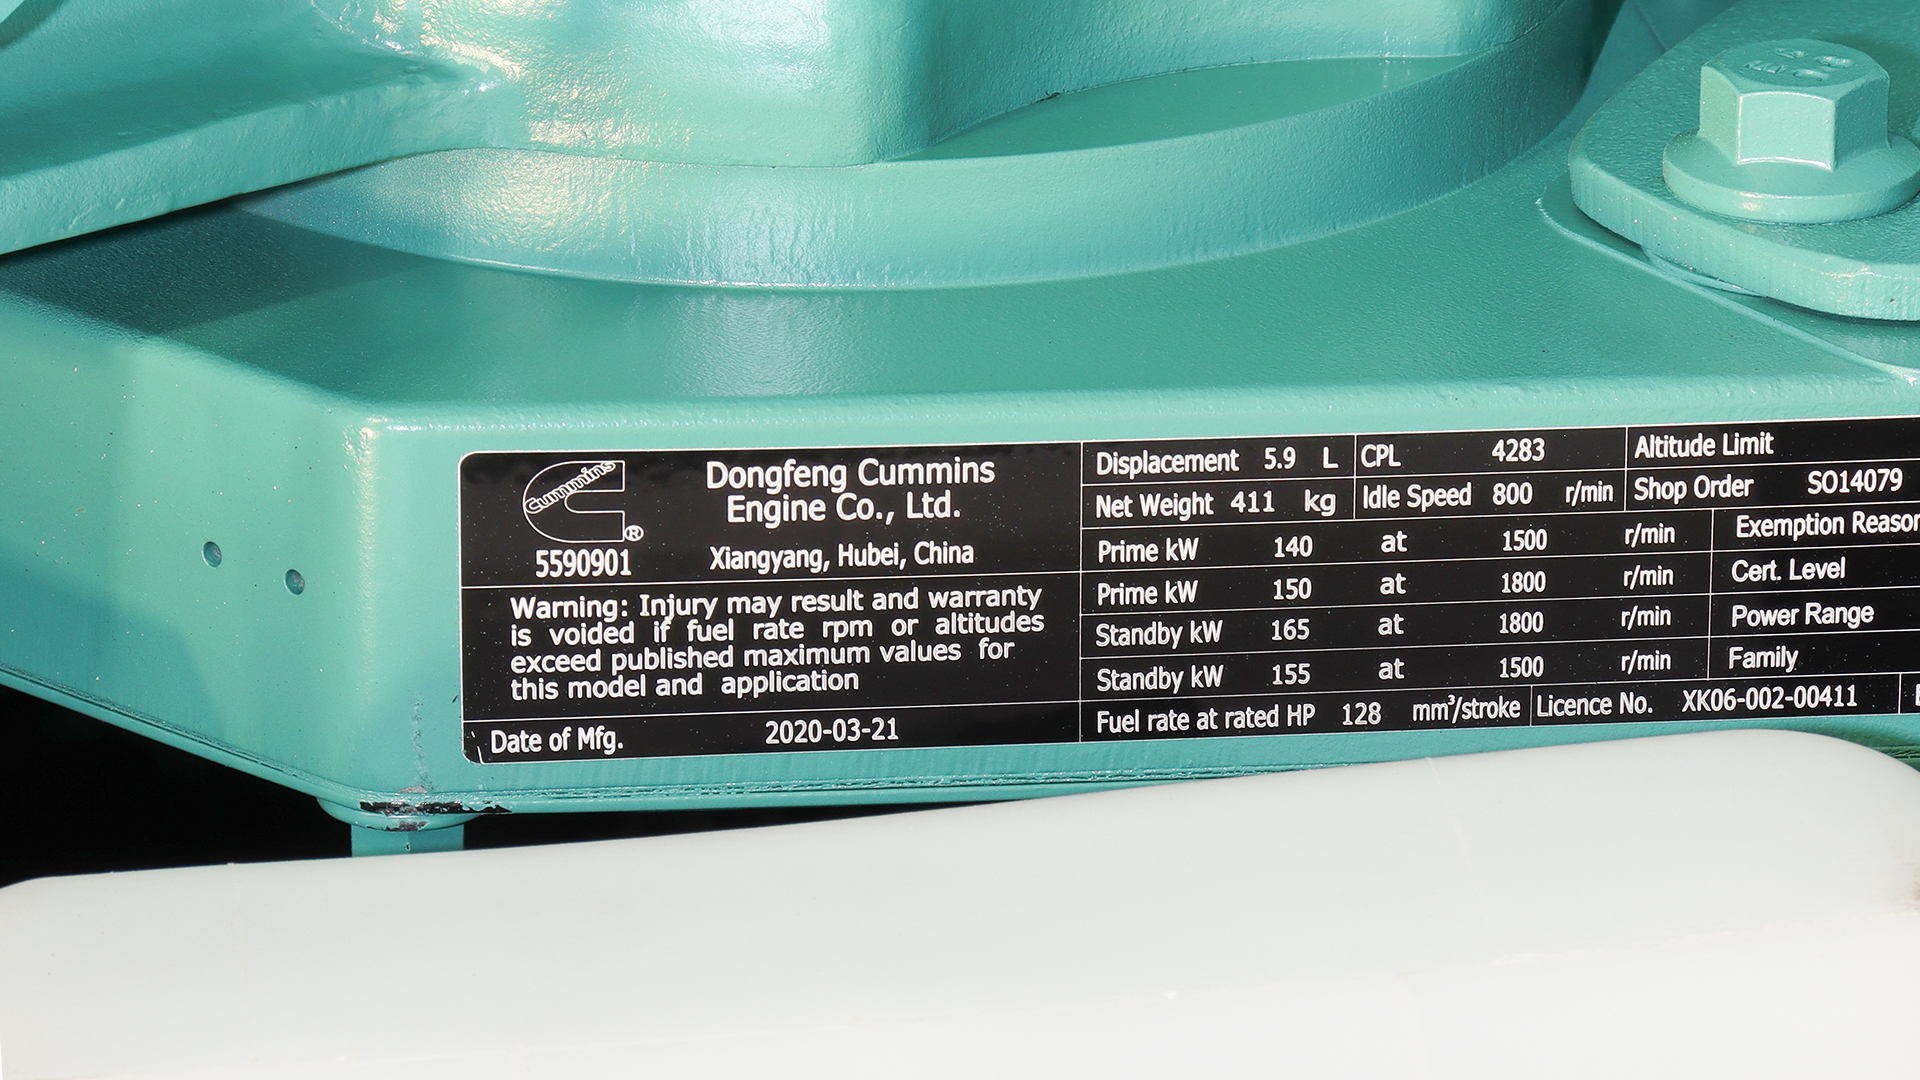 Label on the 1800RPM engine detailing the specifications